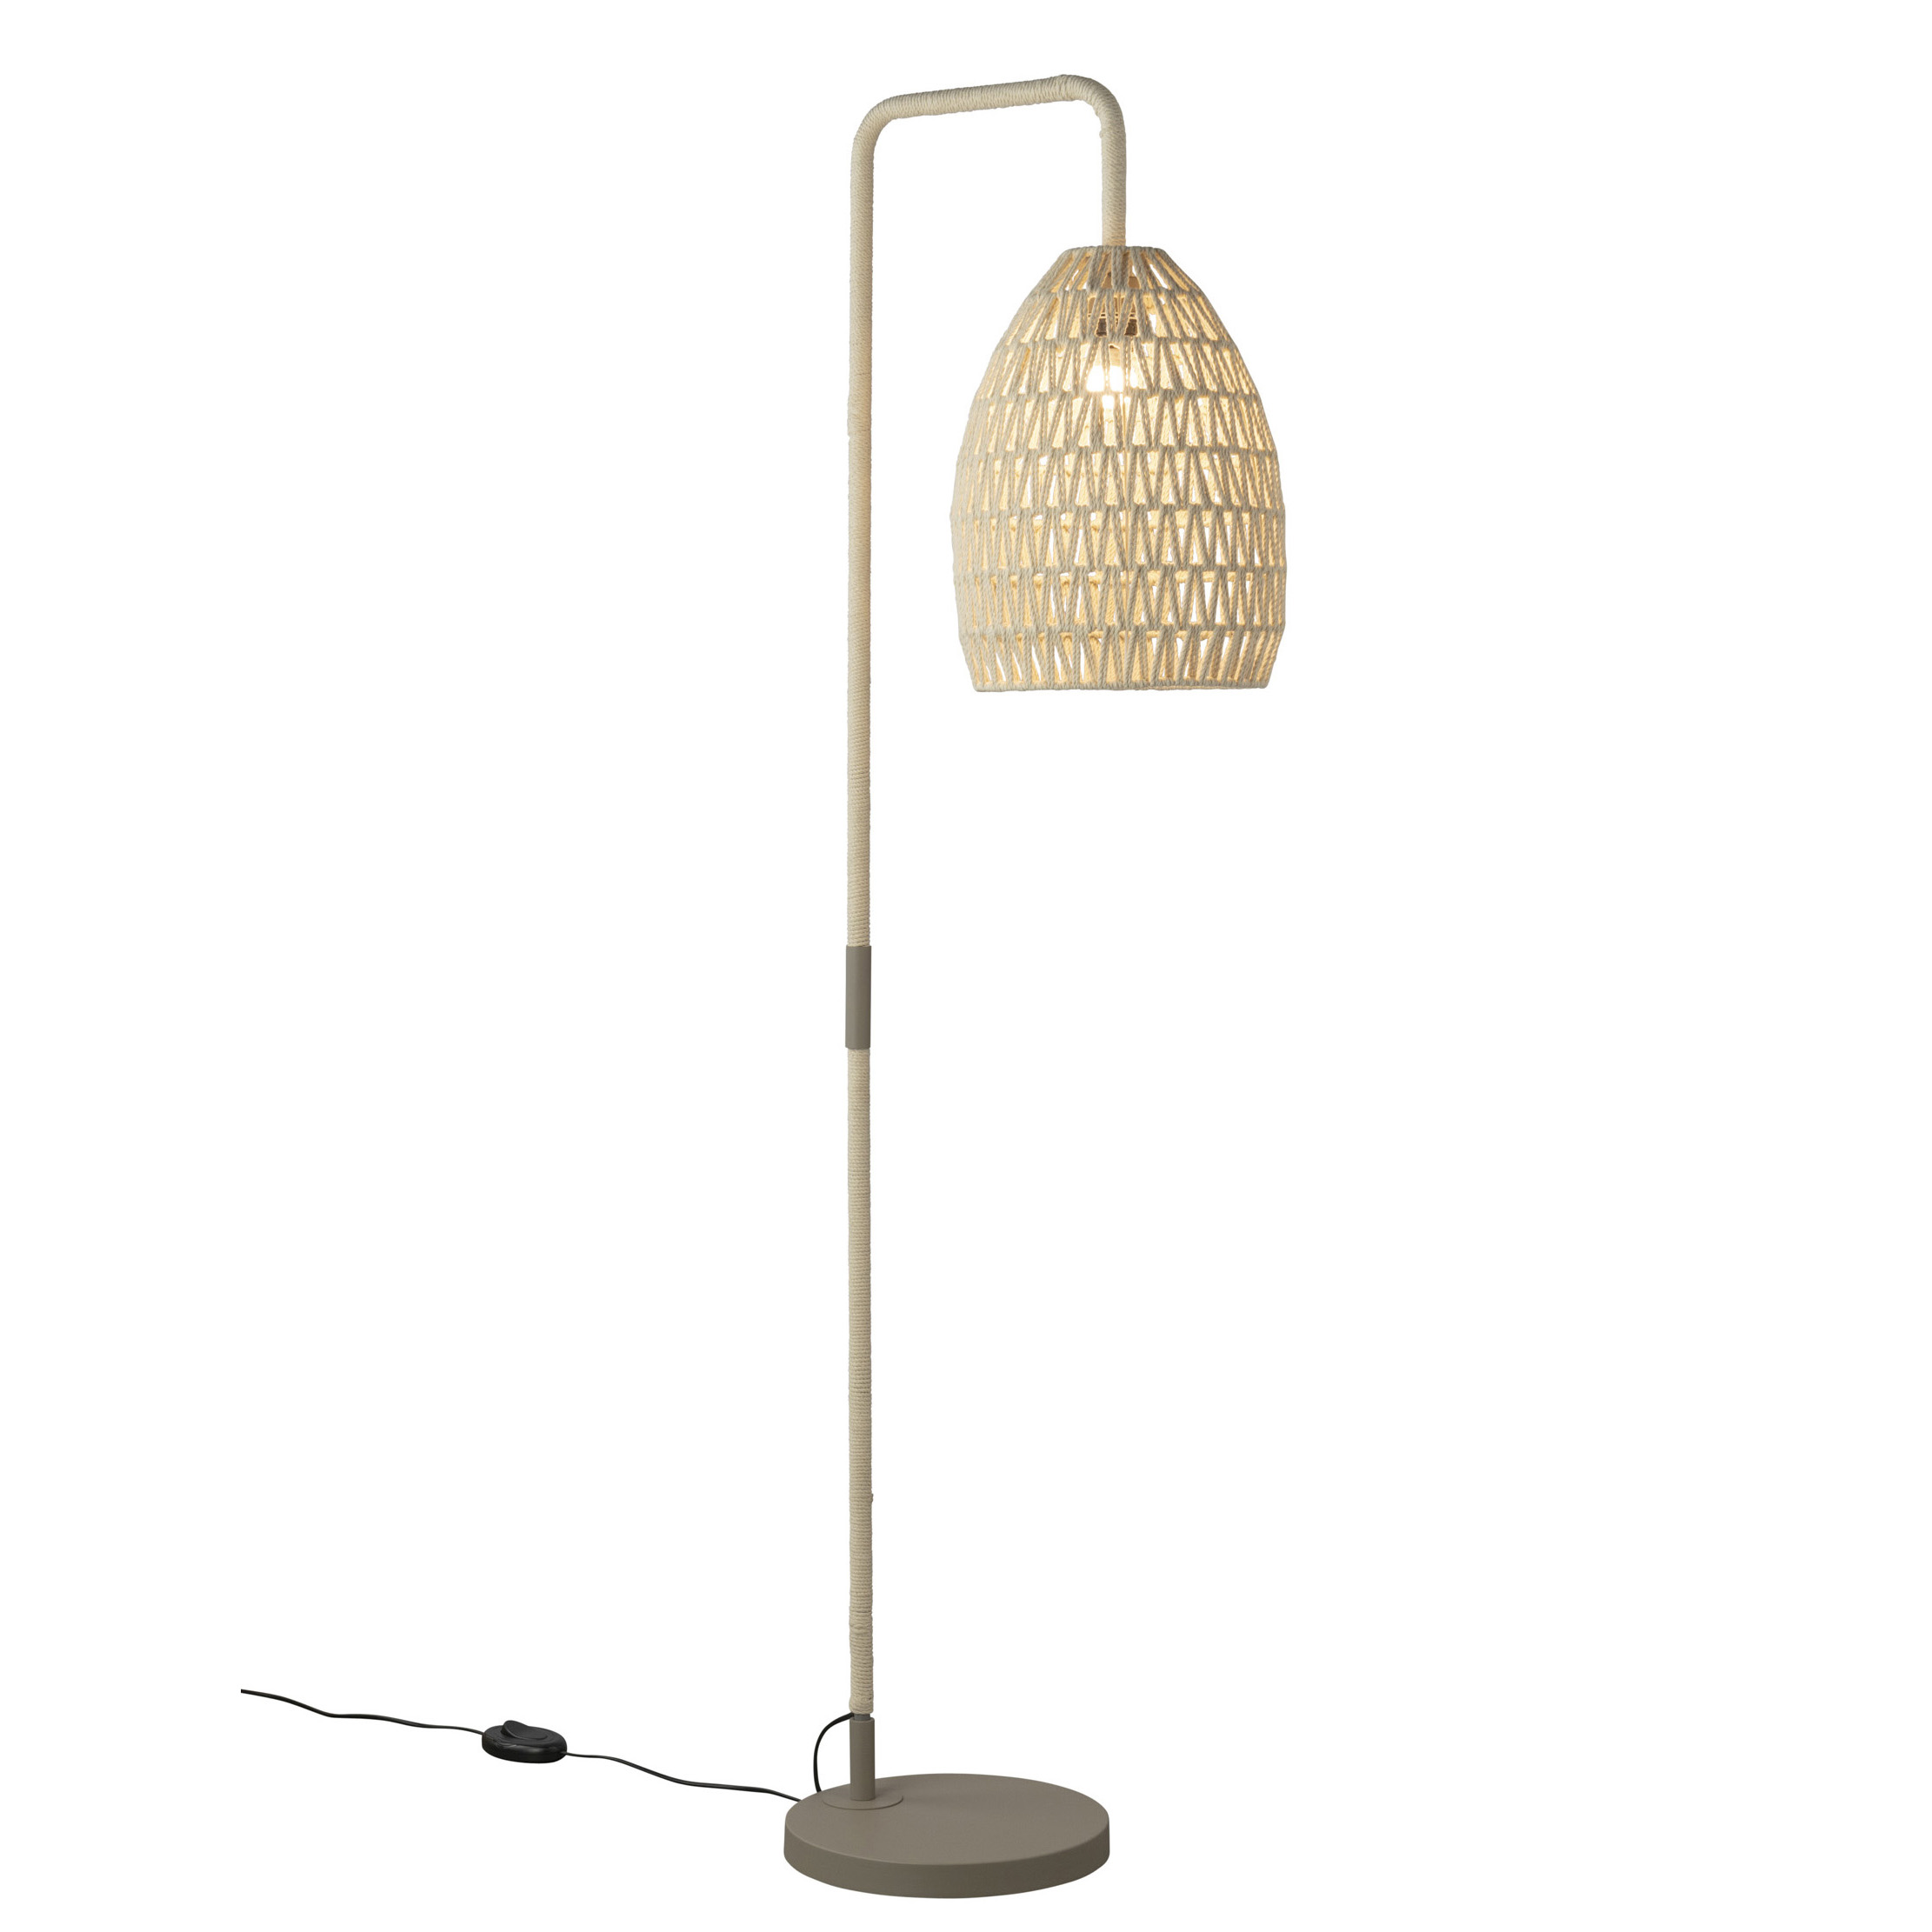 Modern Lamps Melbourne Australia Buy Lamps Online Mayfield